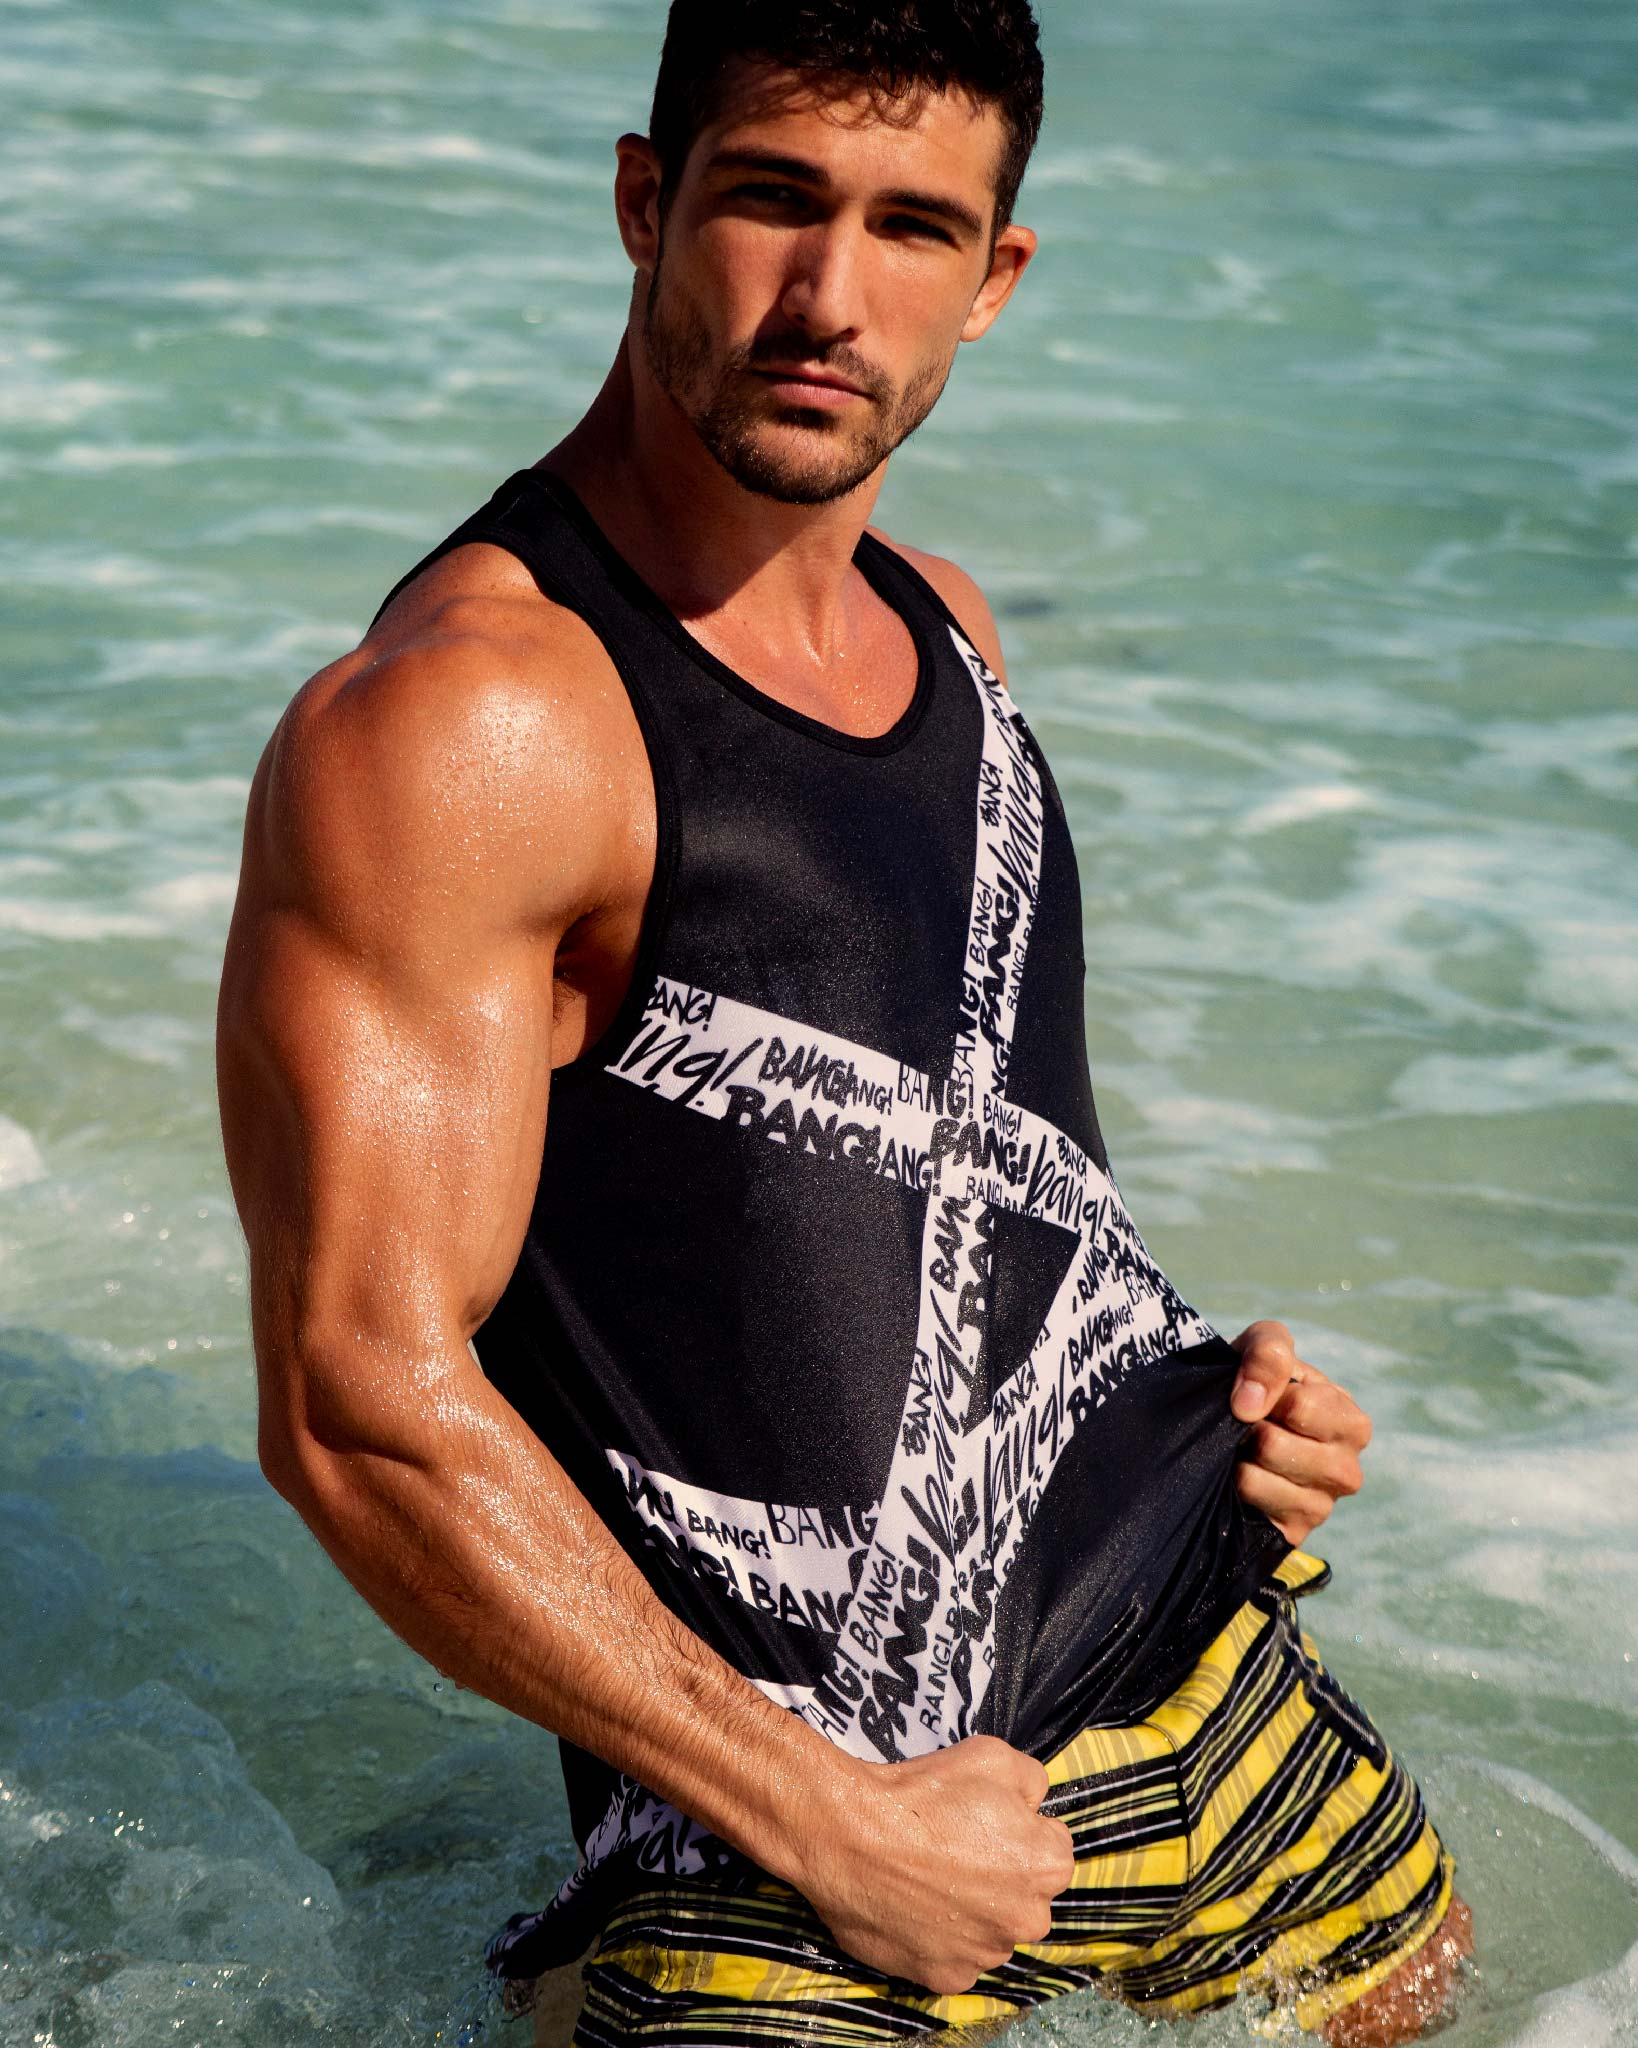 GET IT ON Tank Top Bang Clothes Men Tank Tops Beach Gear editorial